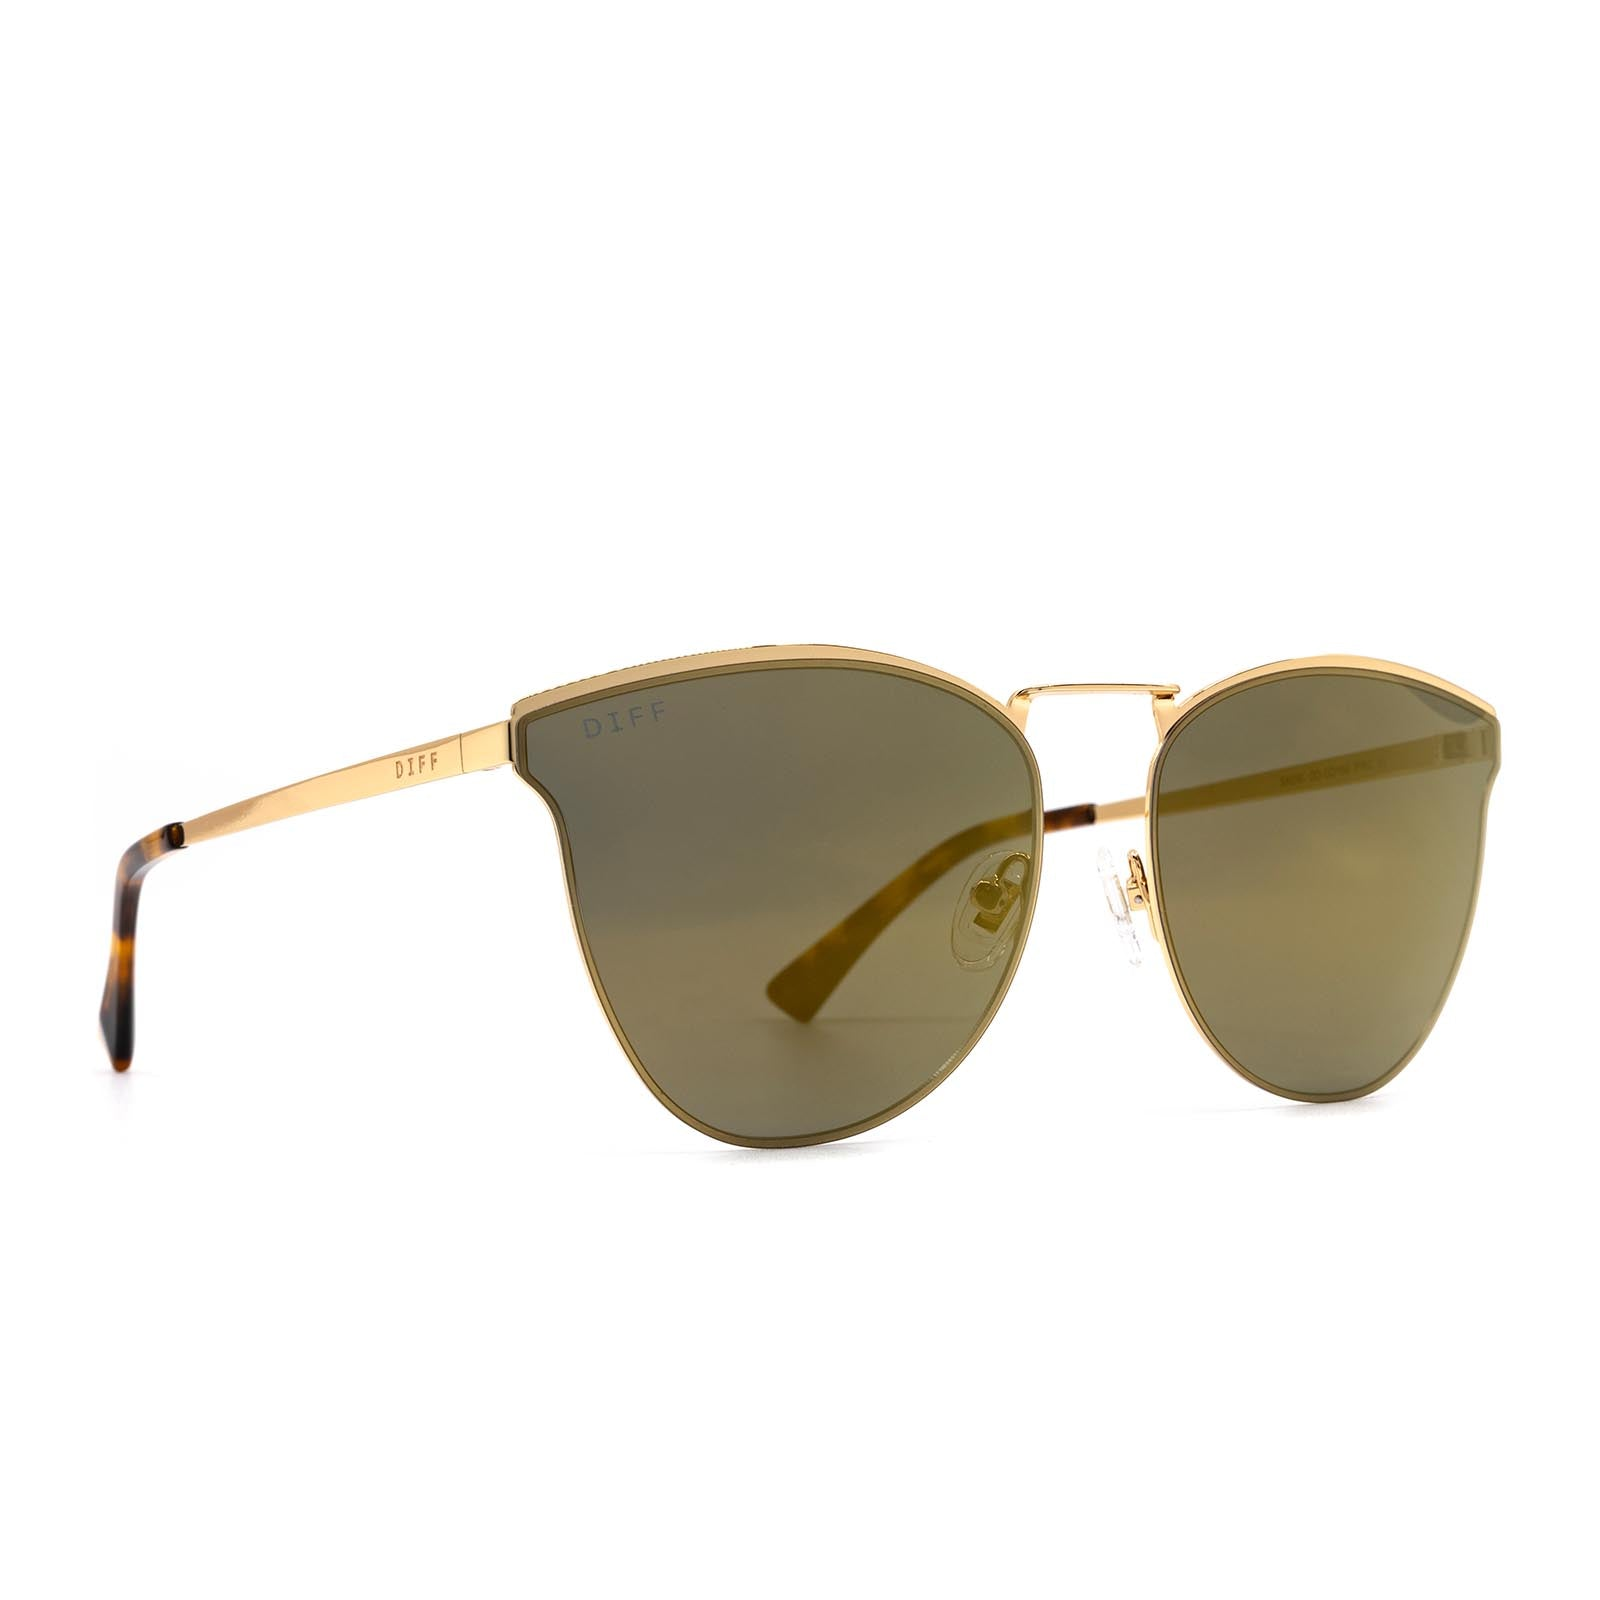 Sadie sunglasses with gold frame and gold lens- angle view